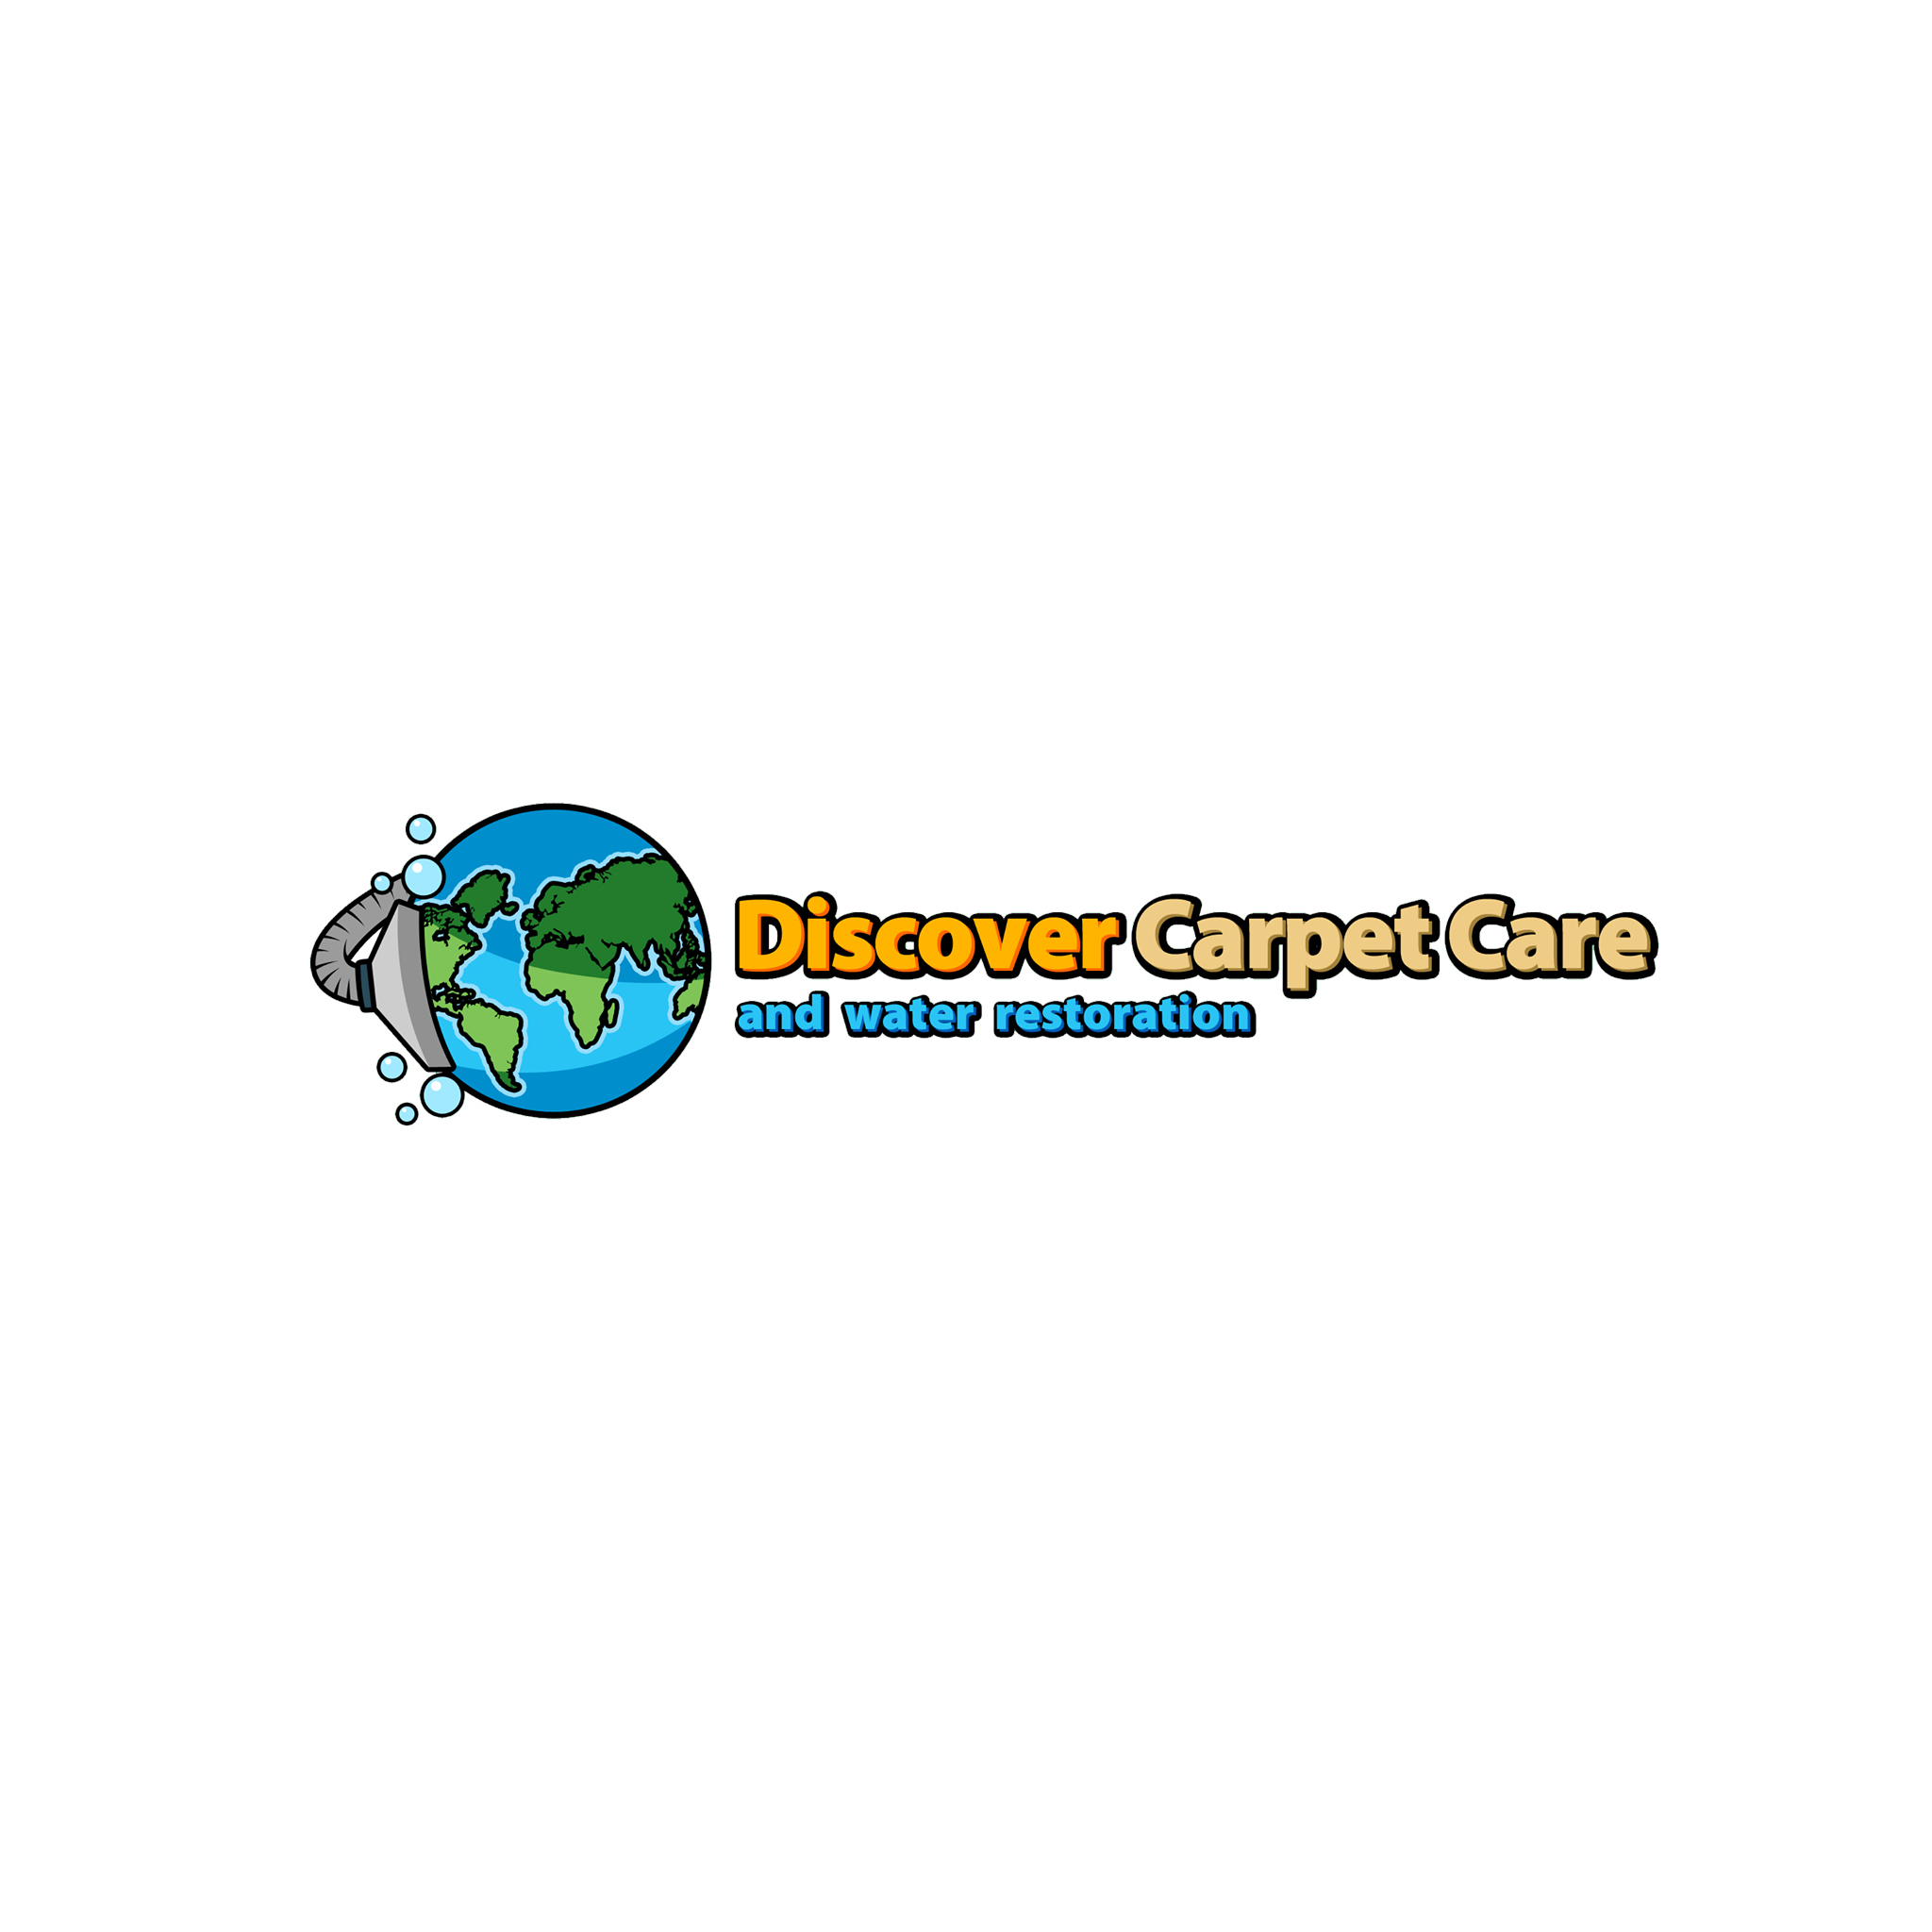 image of the Discover Carpet Care